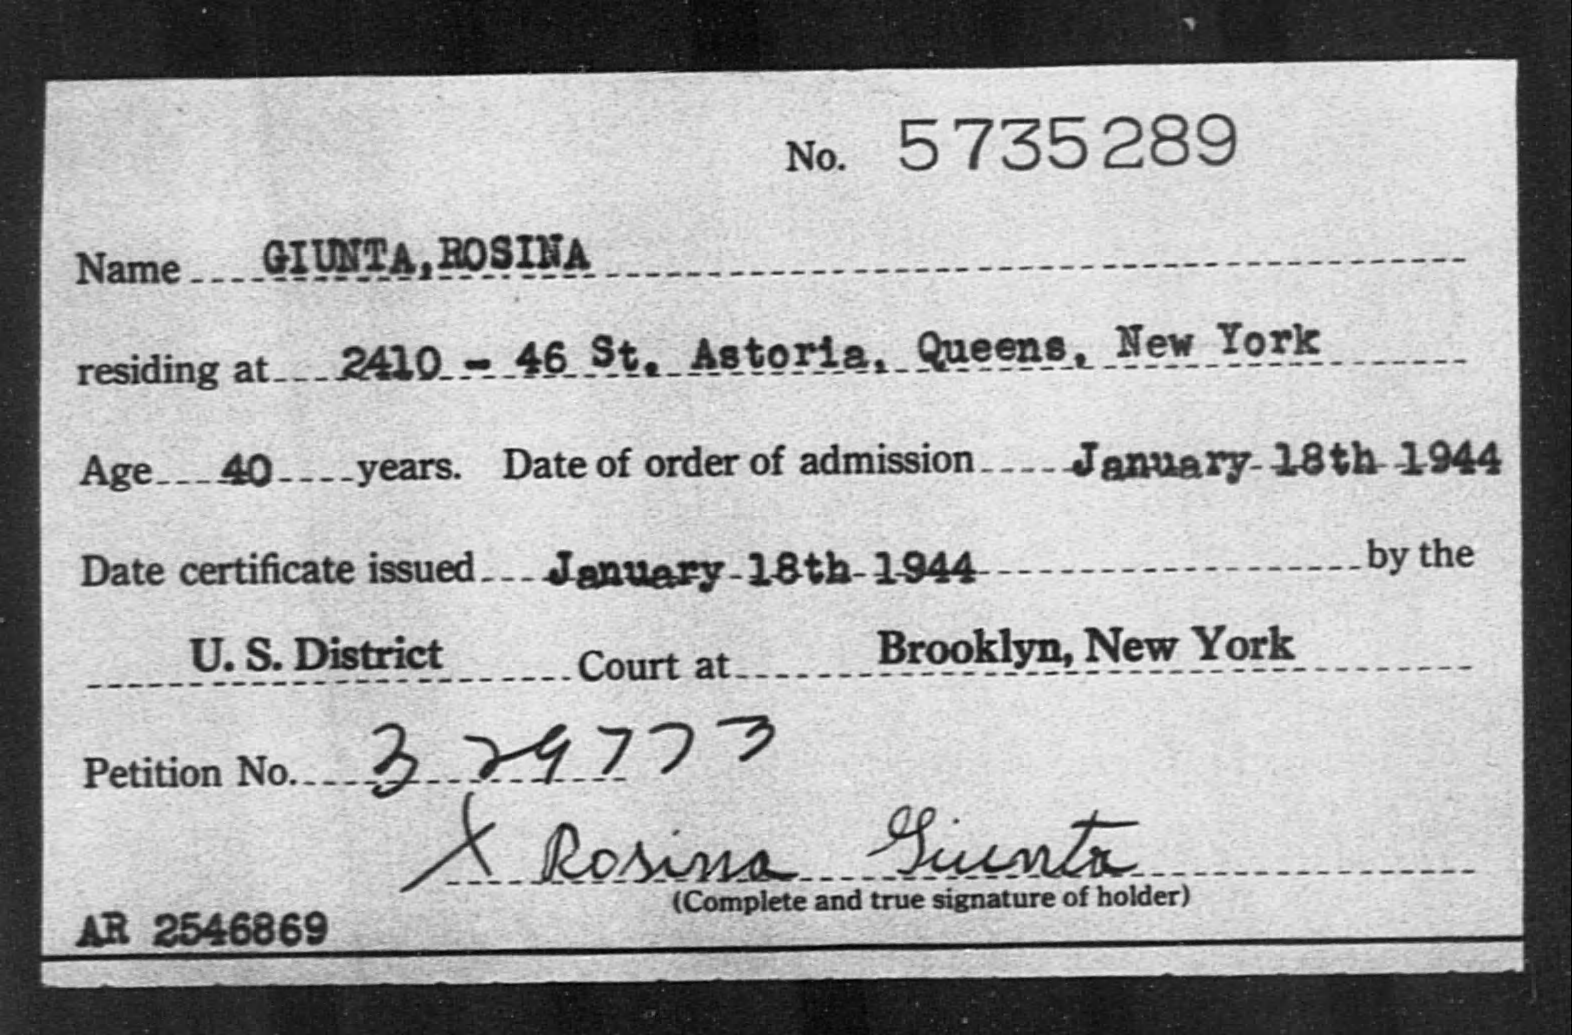 GIUNTA, ROSINA - Born: [BLANK], Naturalized: 1944